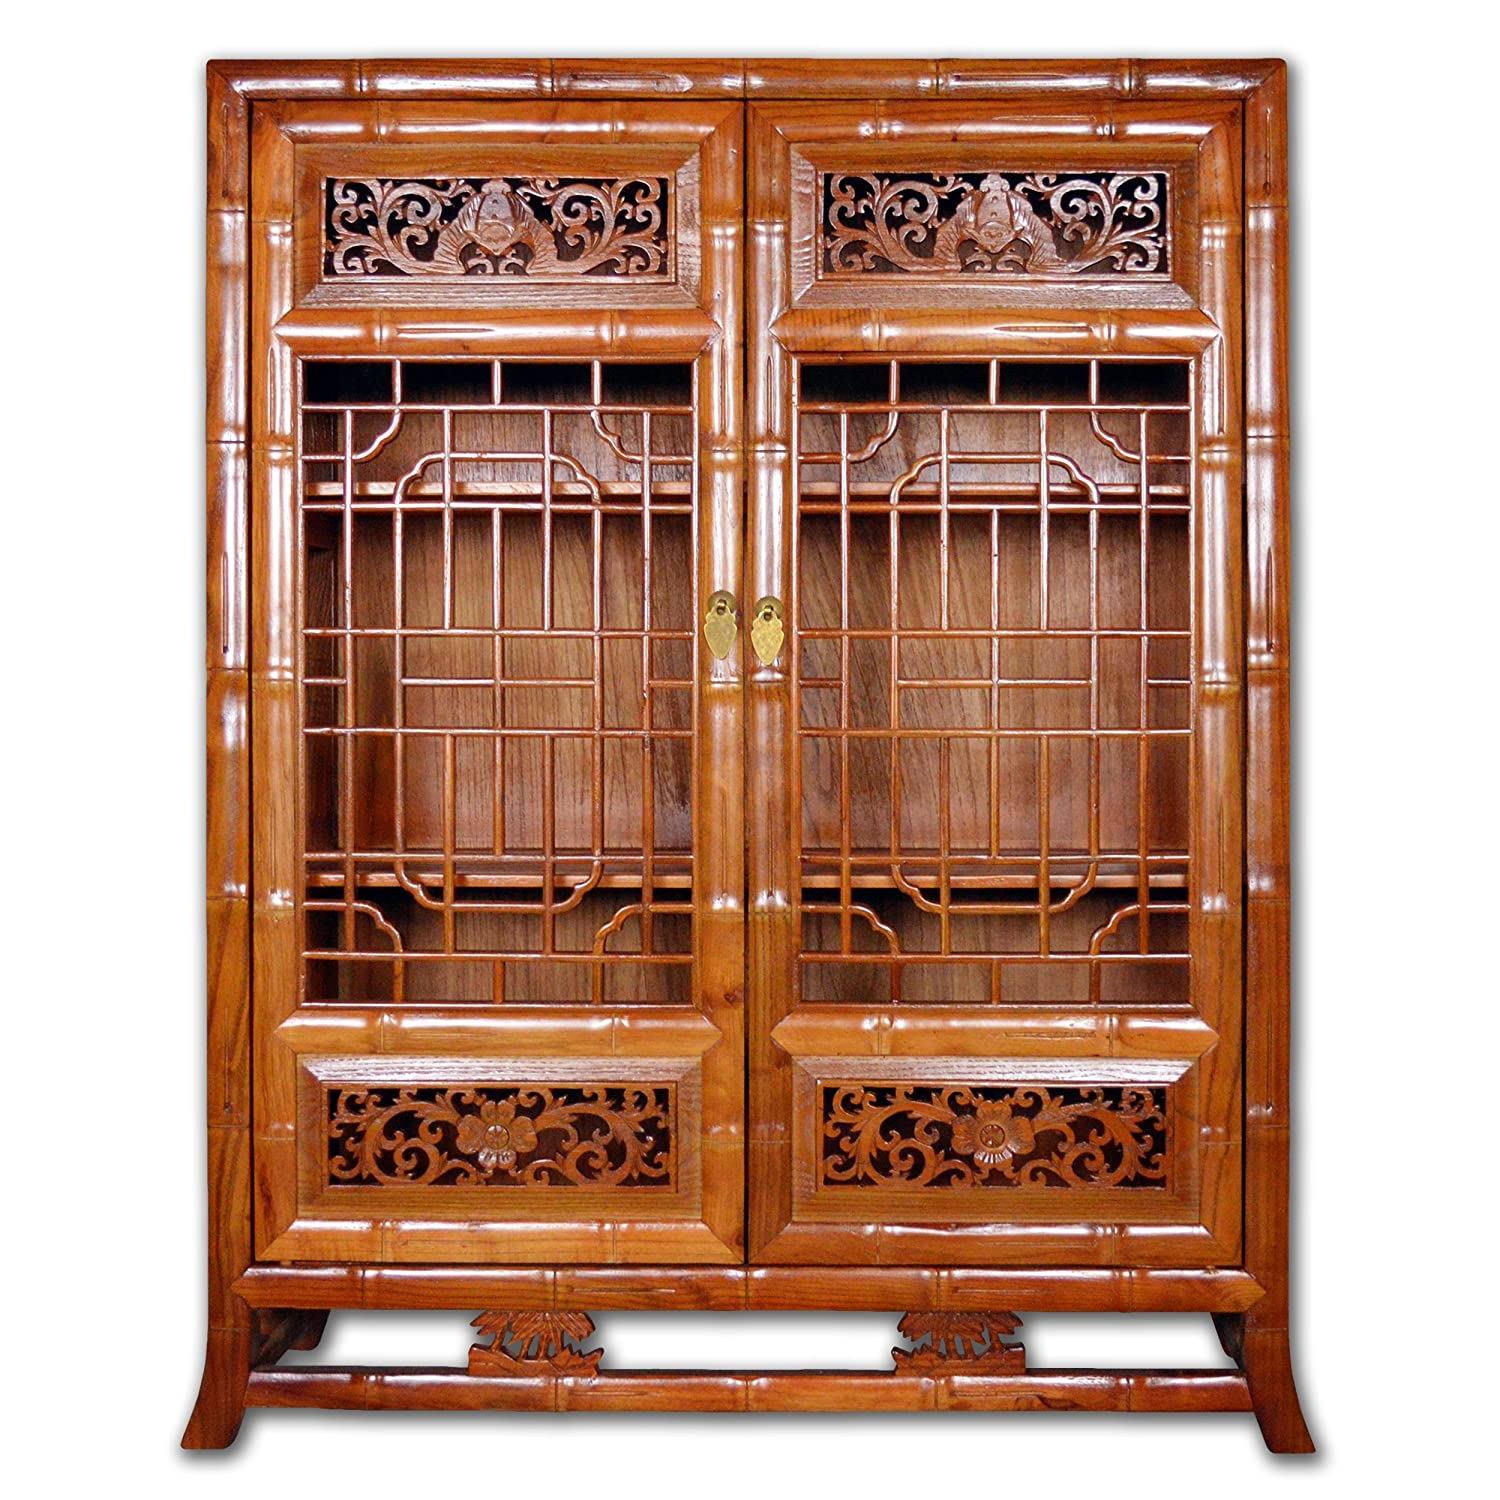 Traditional Chinese cabinet with intricate latticework on doors allowing people to view items inside